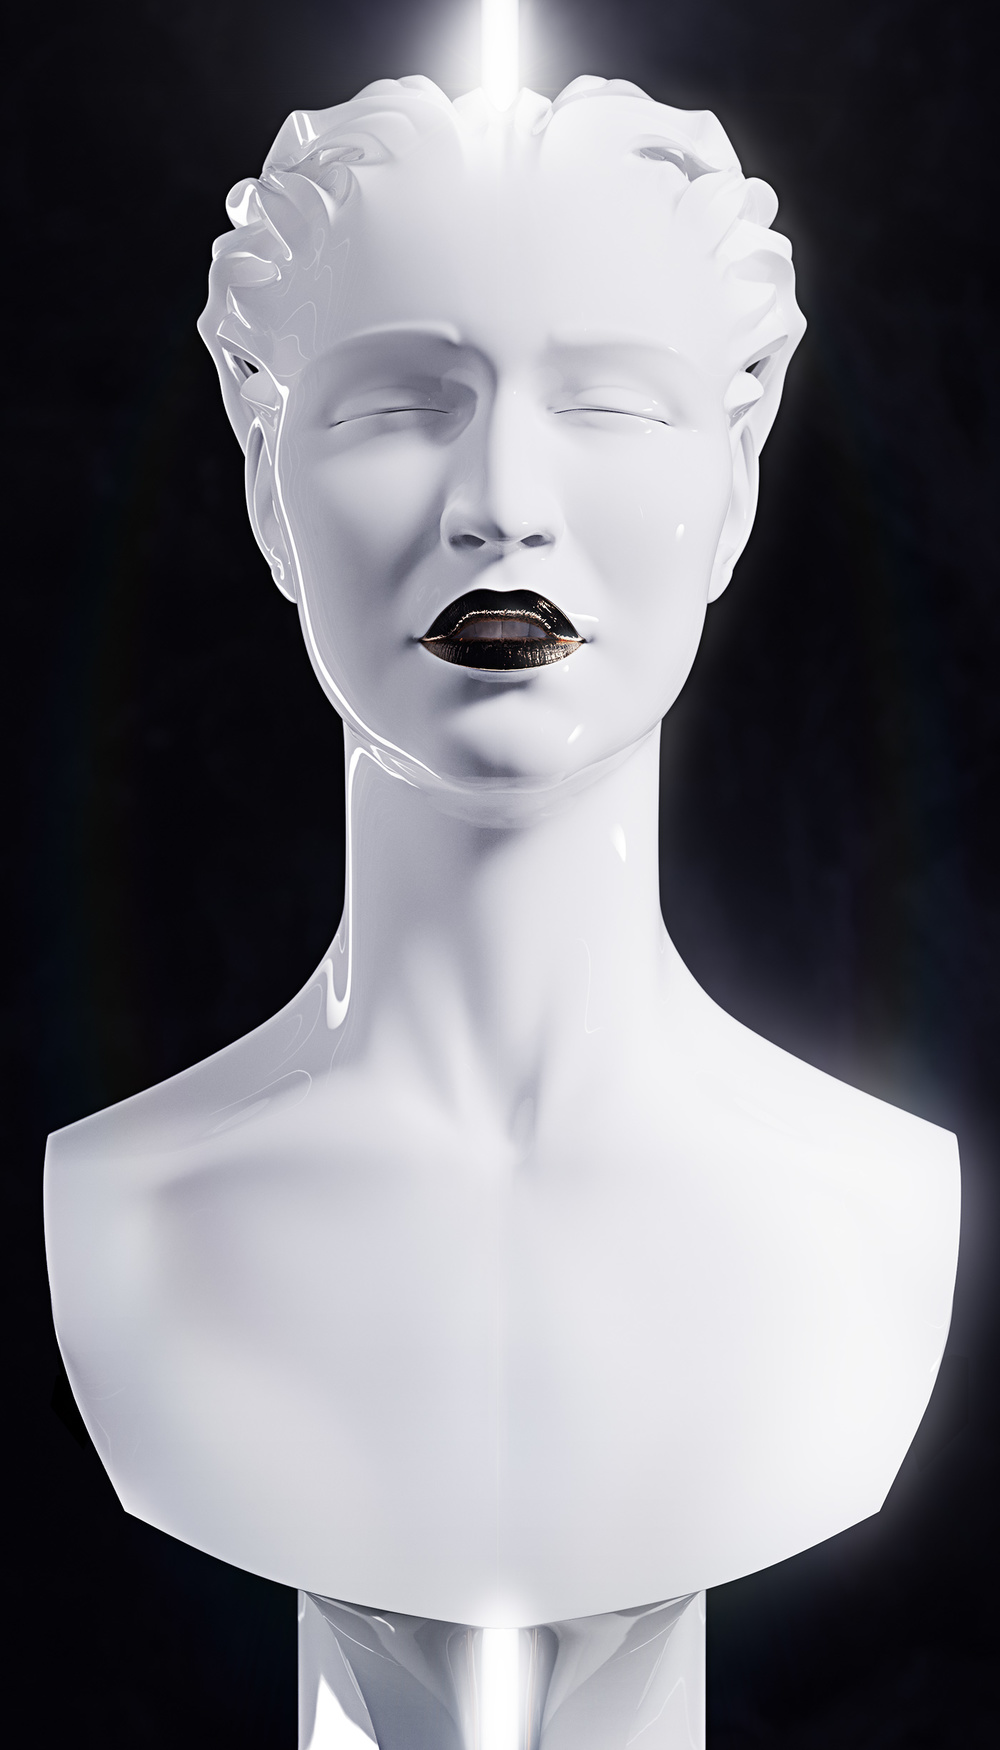 Sculpture, portrait of a Singer 2